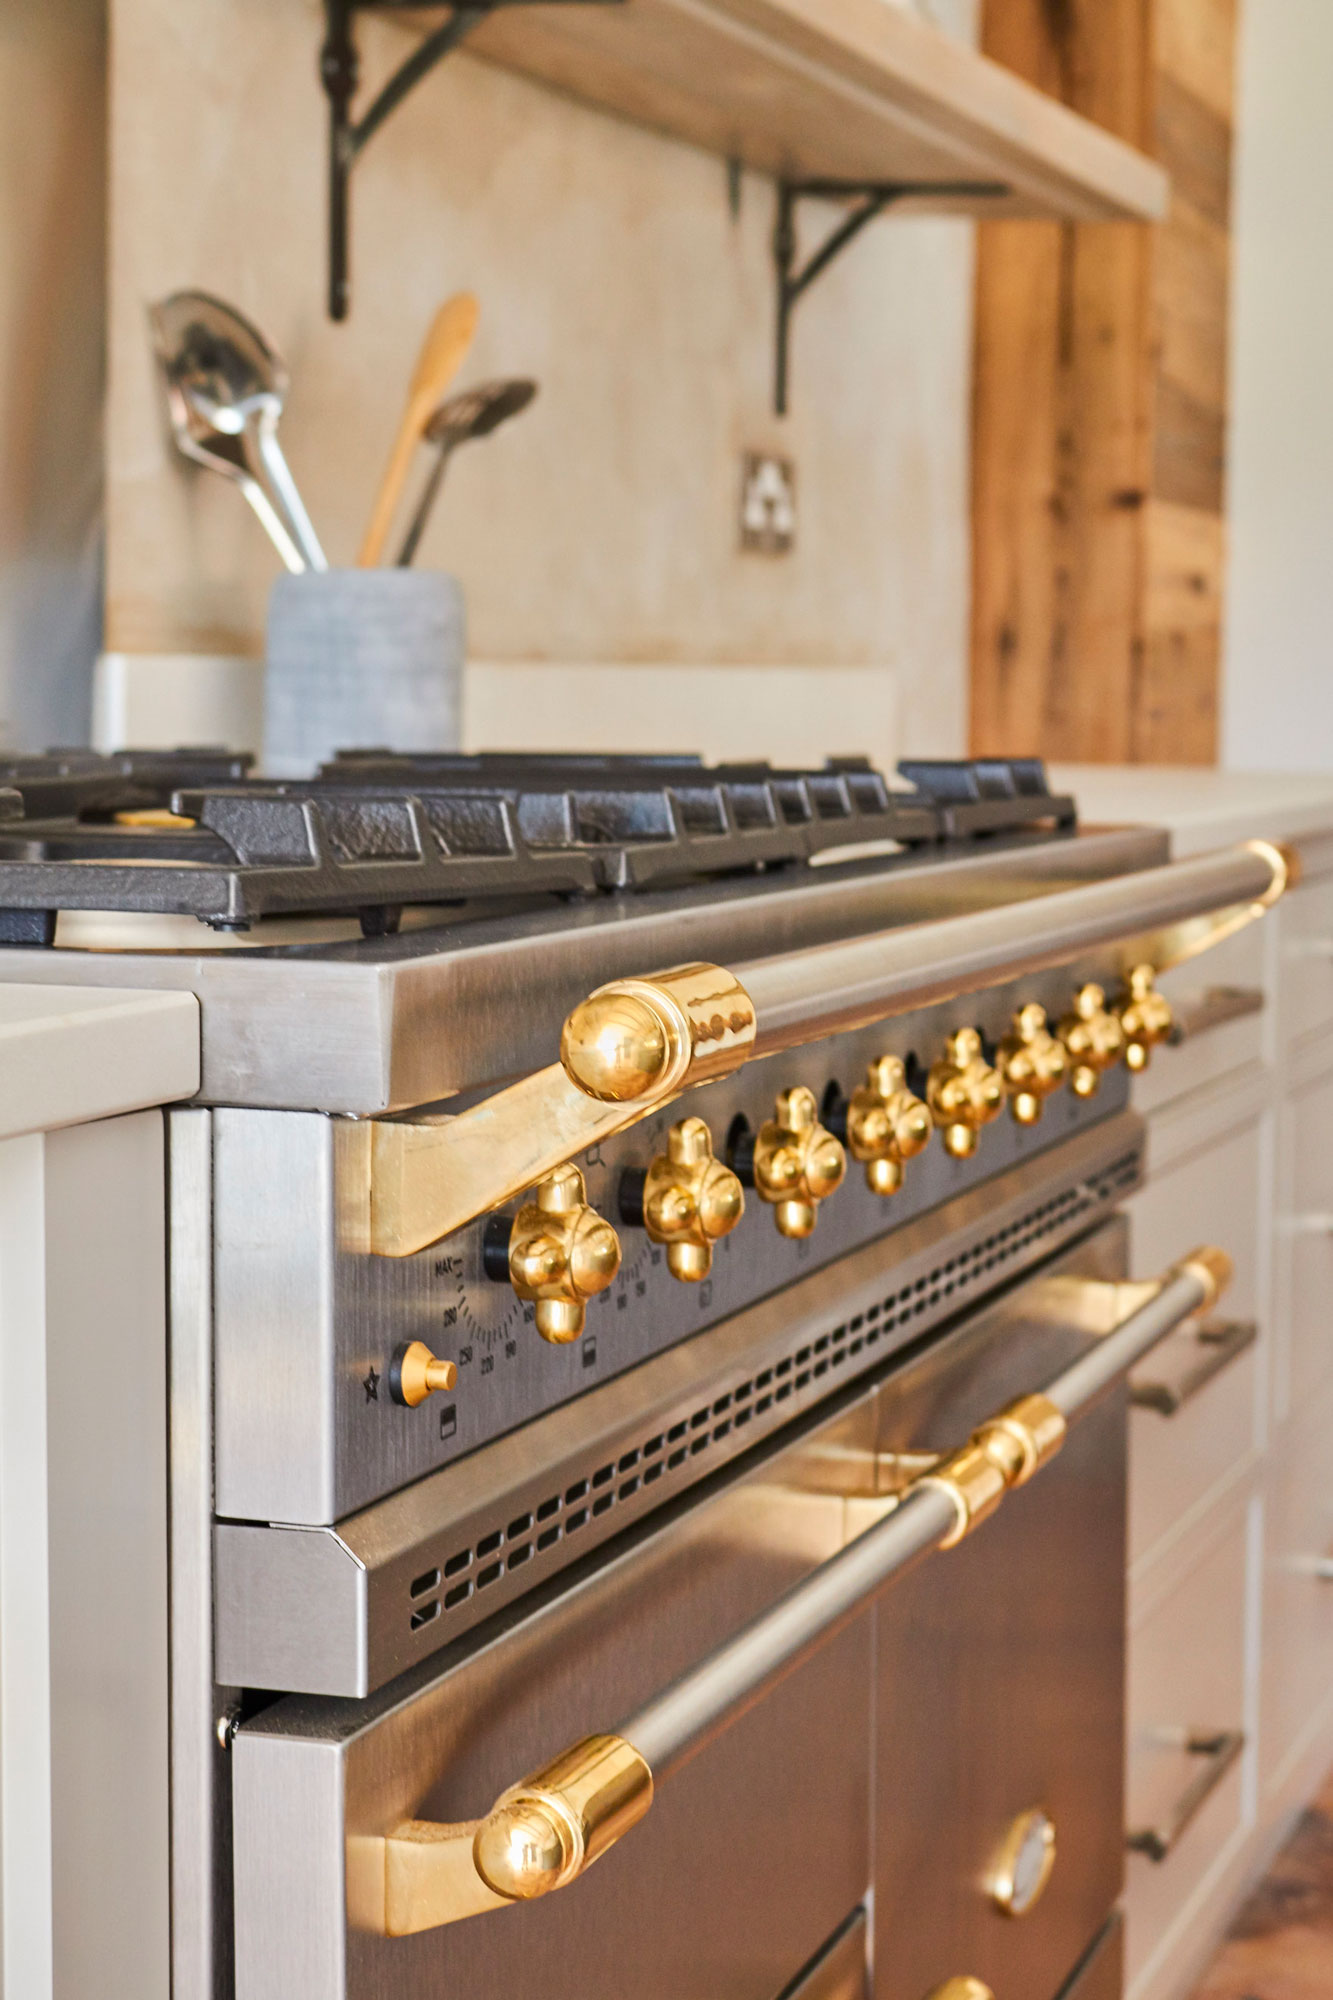 Brushed stainless steel Lacanche Macon gas range cooker with brass trim